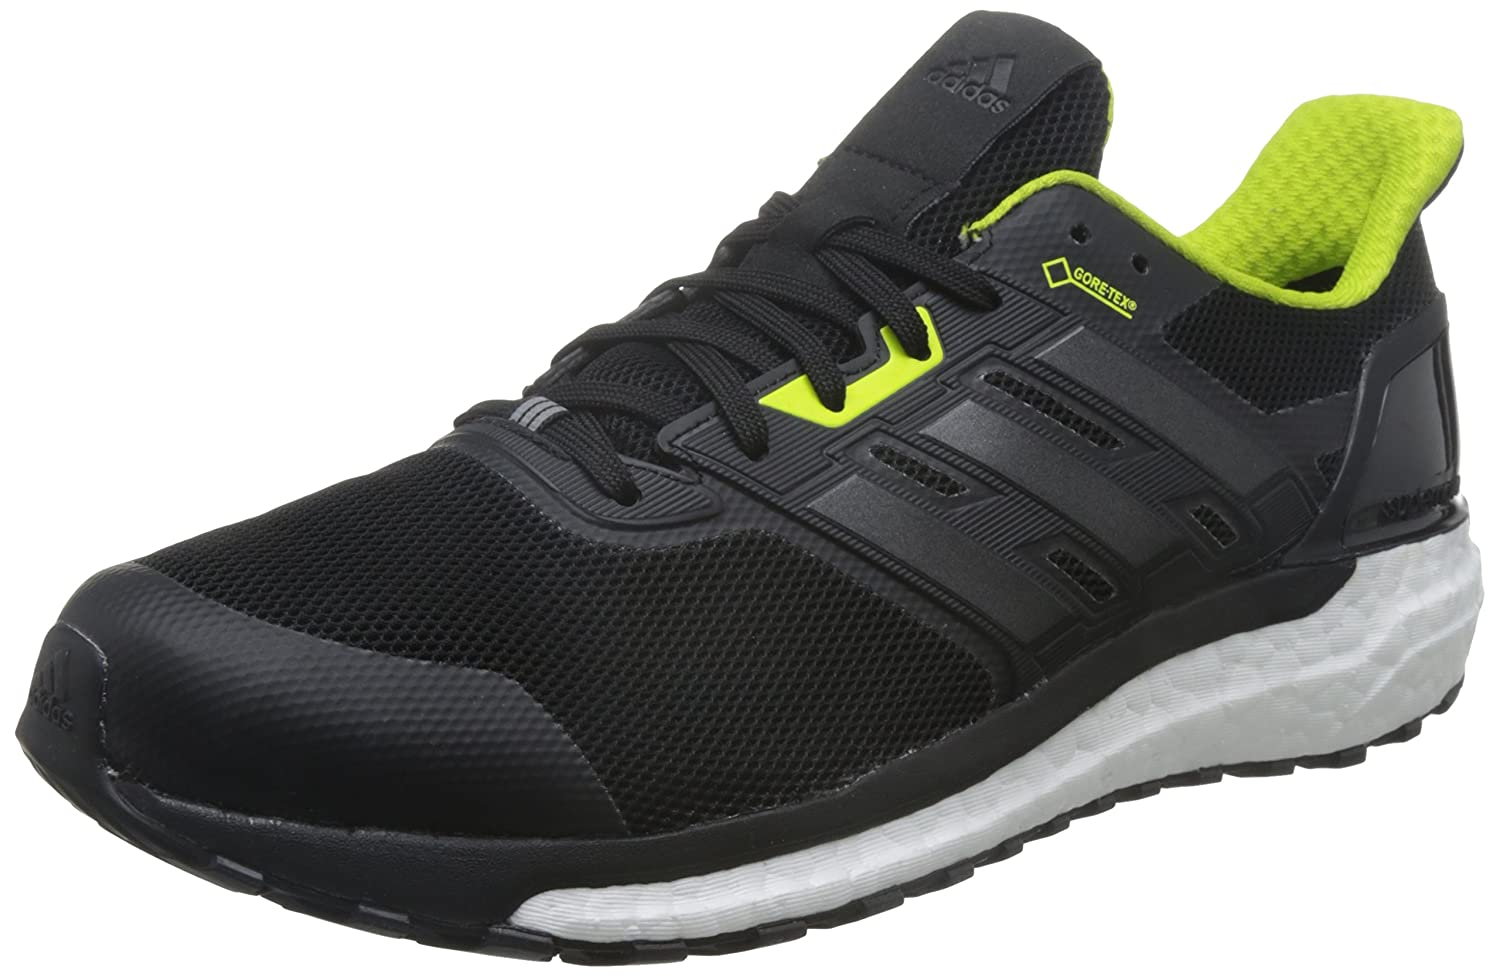 new products 5ca0a c4da5 adidas Men  s Supernova GTX M Running Shoes  Amazon.co.uk  Shoes   Bags